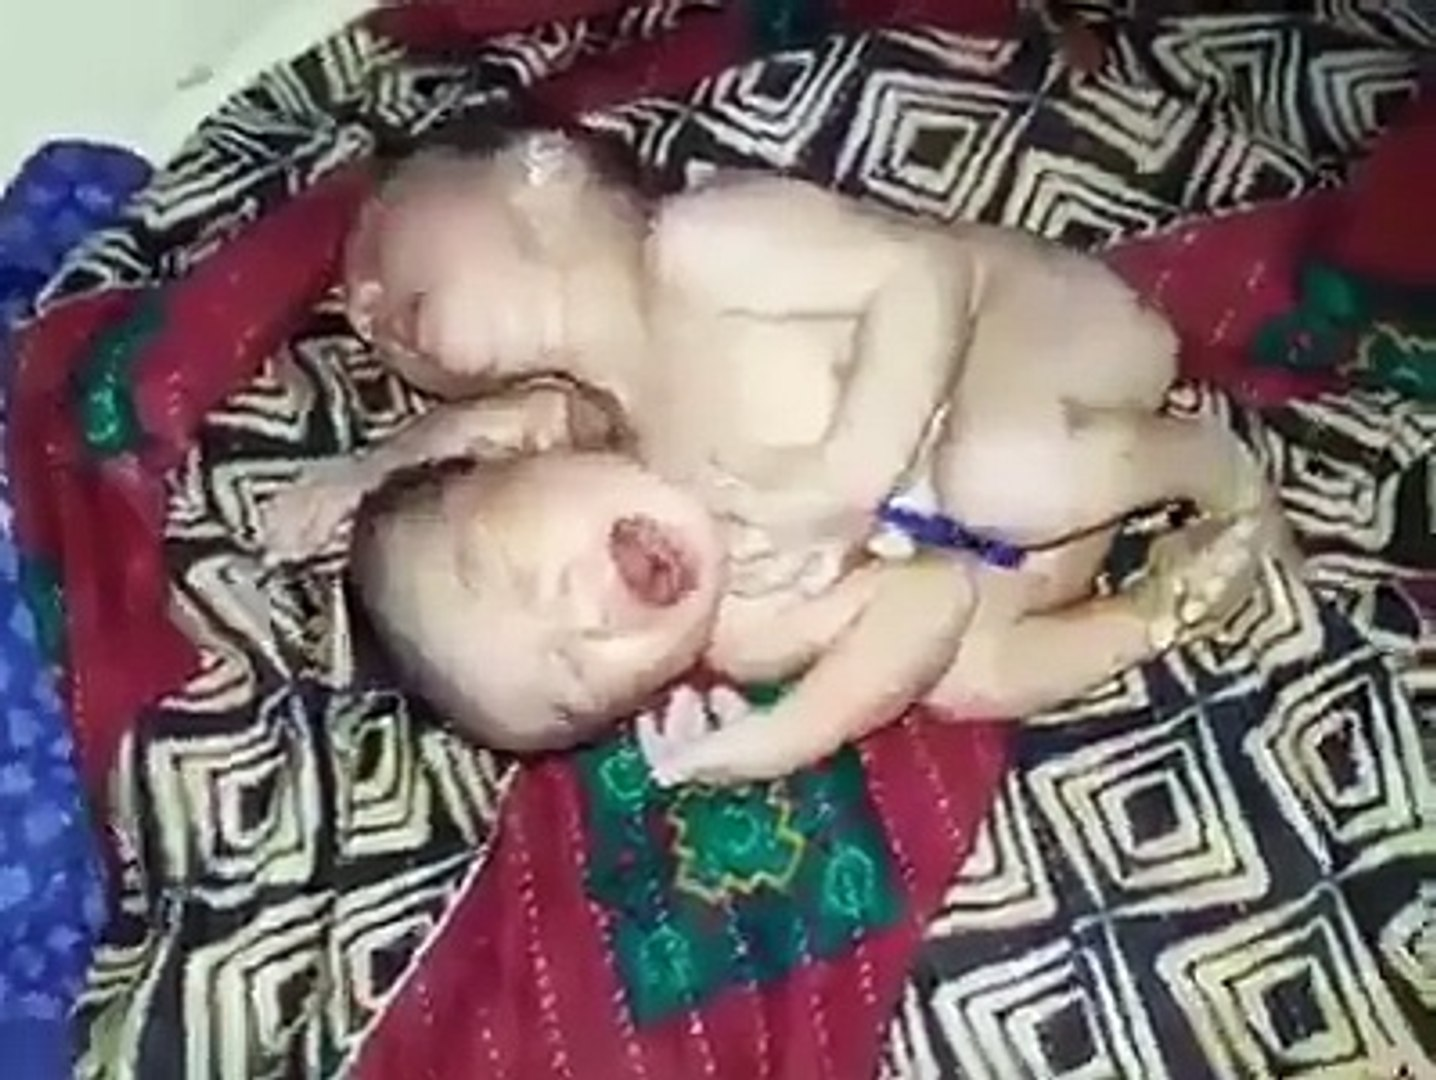 Miracle of Allah baby born with one body